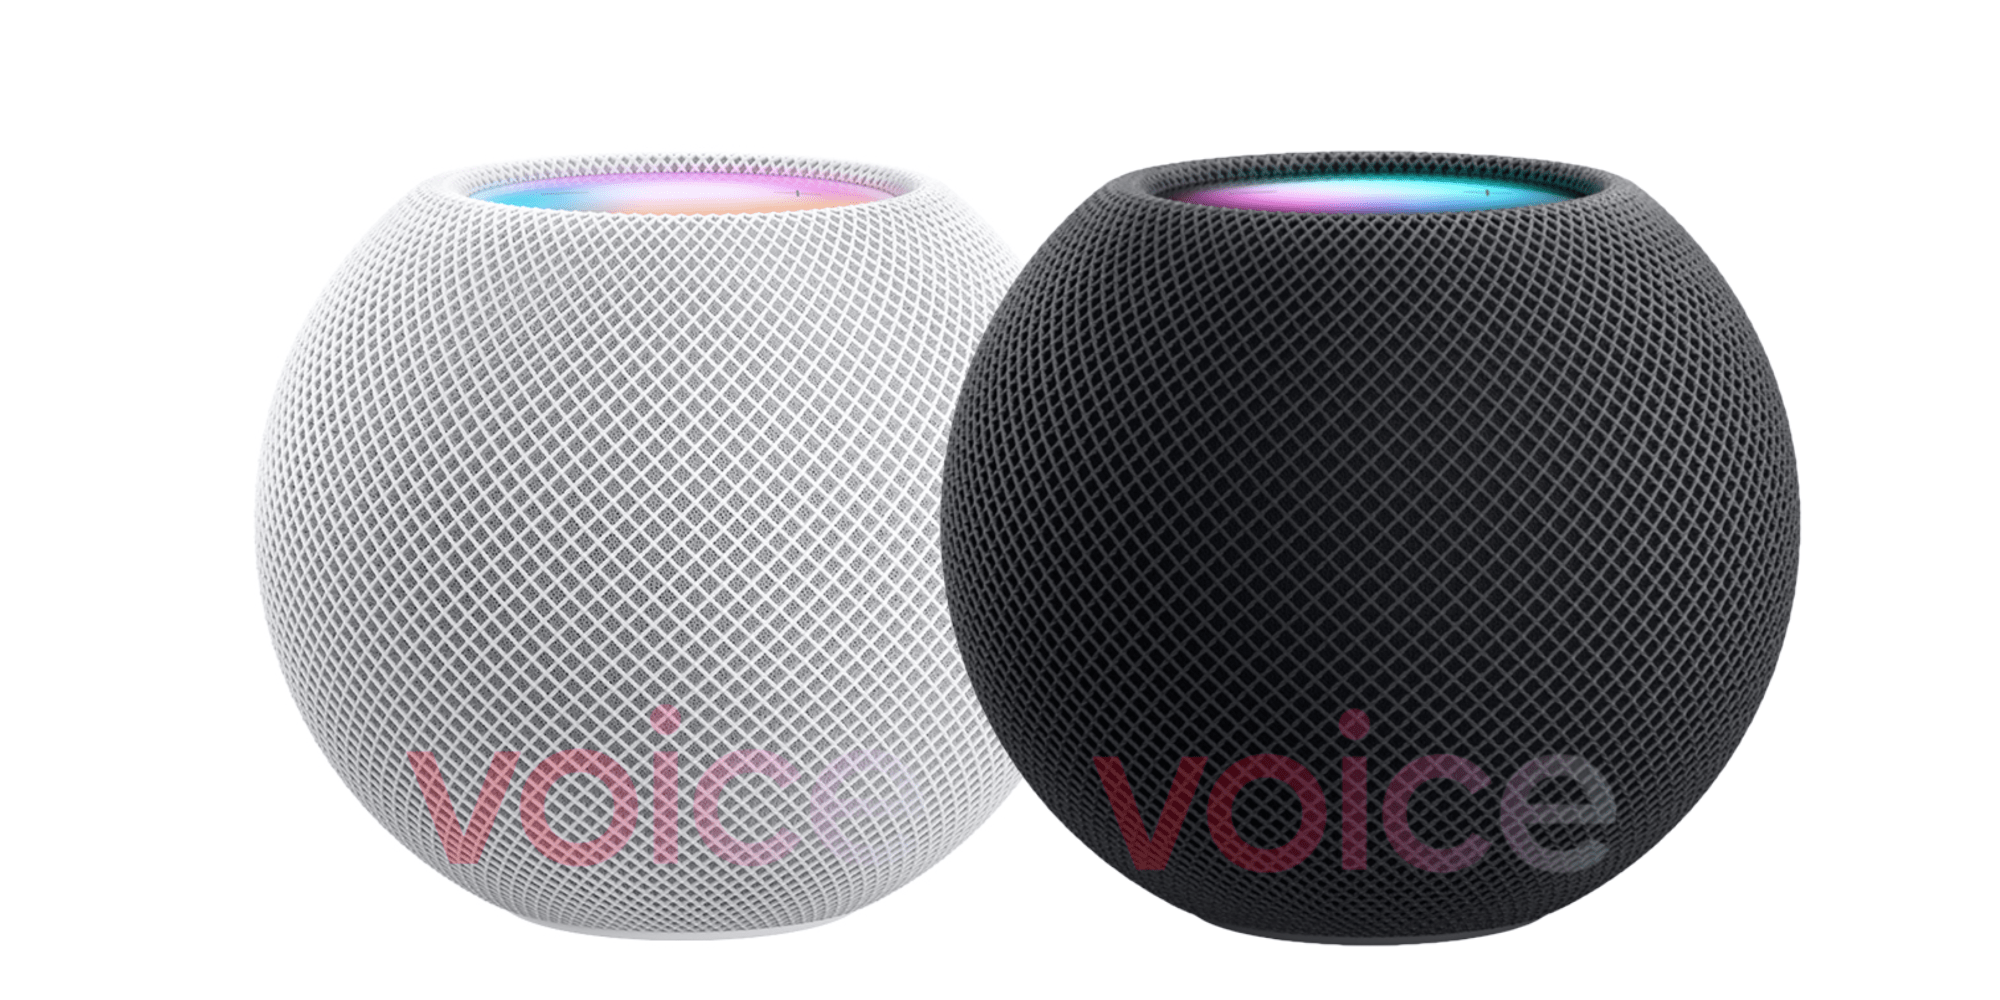 HomePod mini confirmed for iPhone 12 event today, smaller design with  spherical shape - 9to5Mac